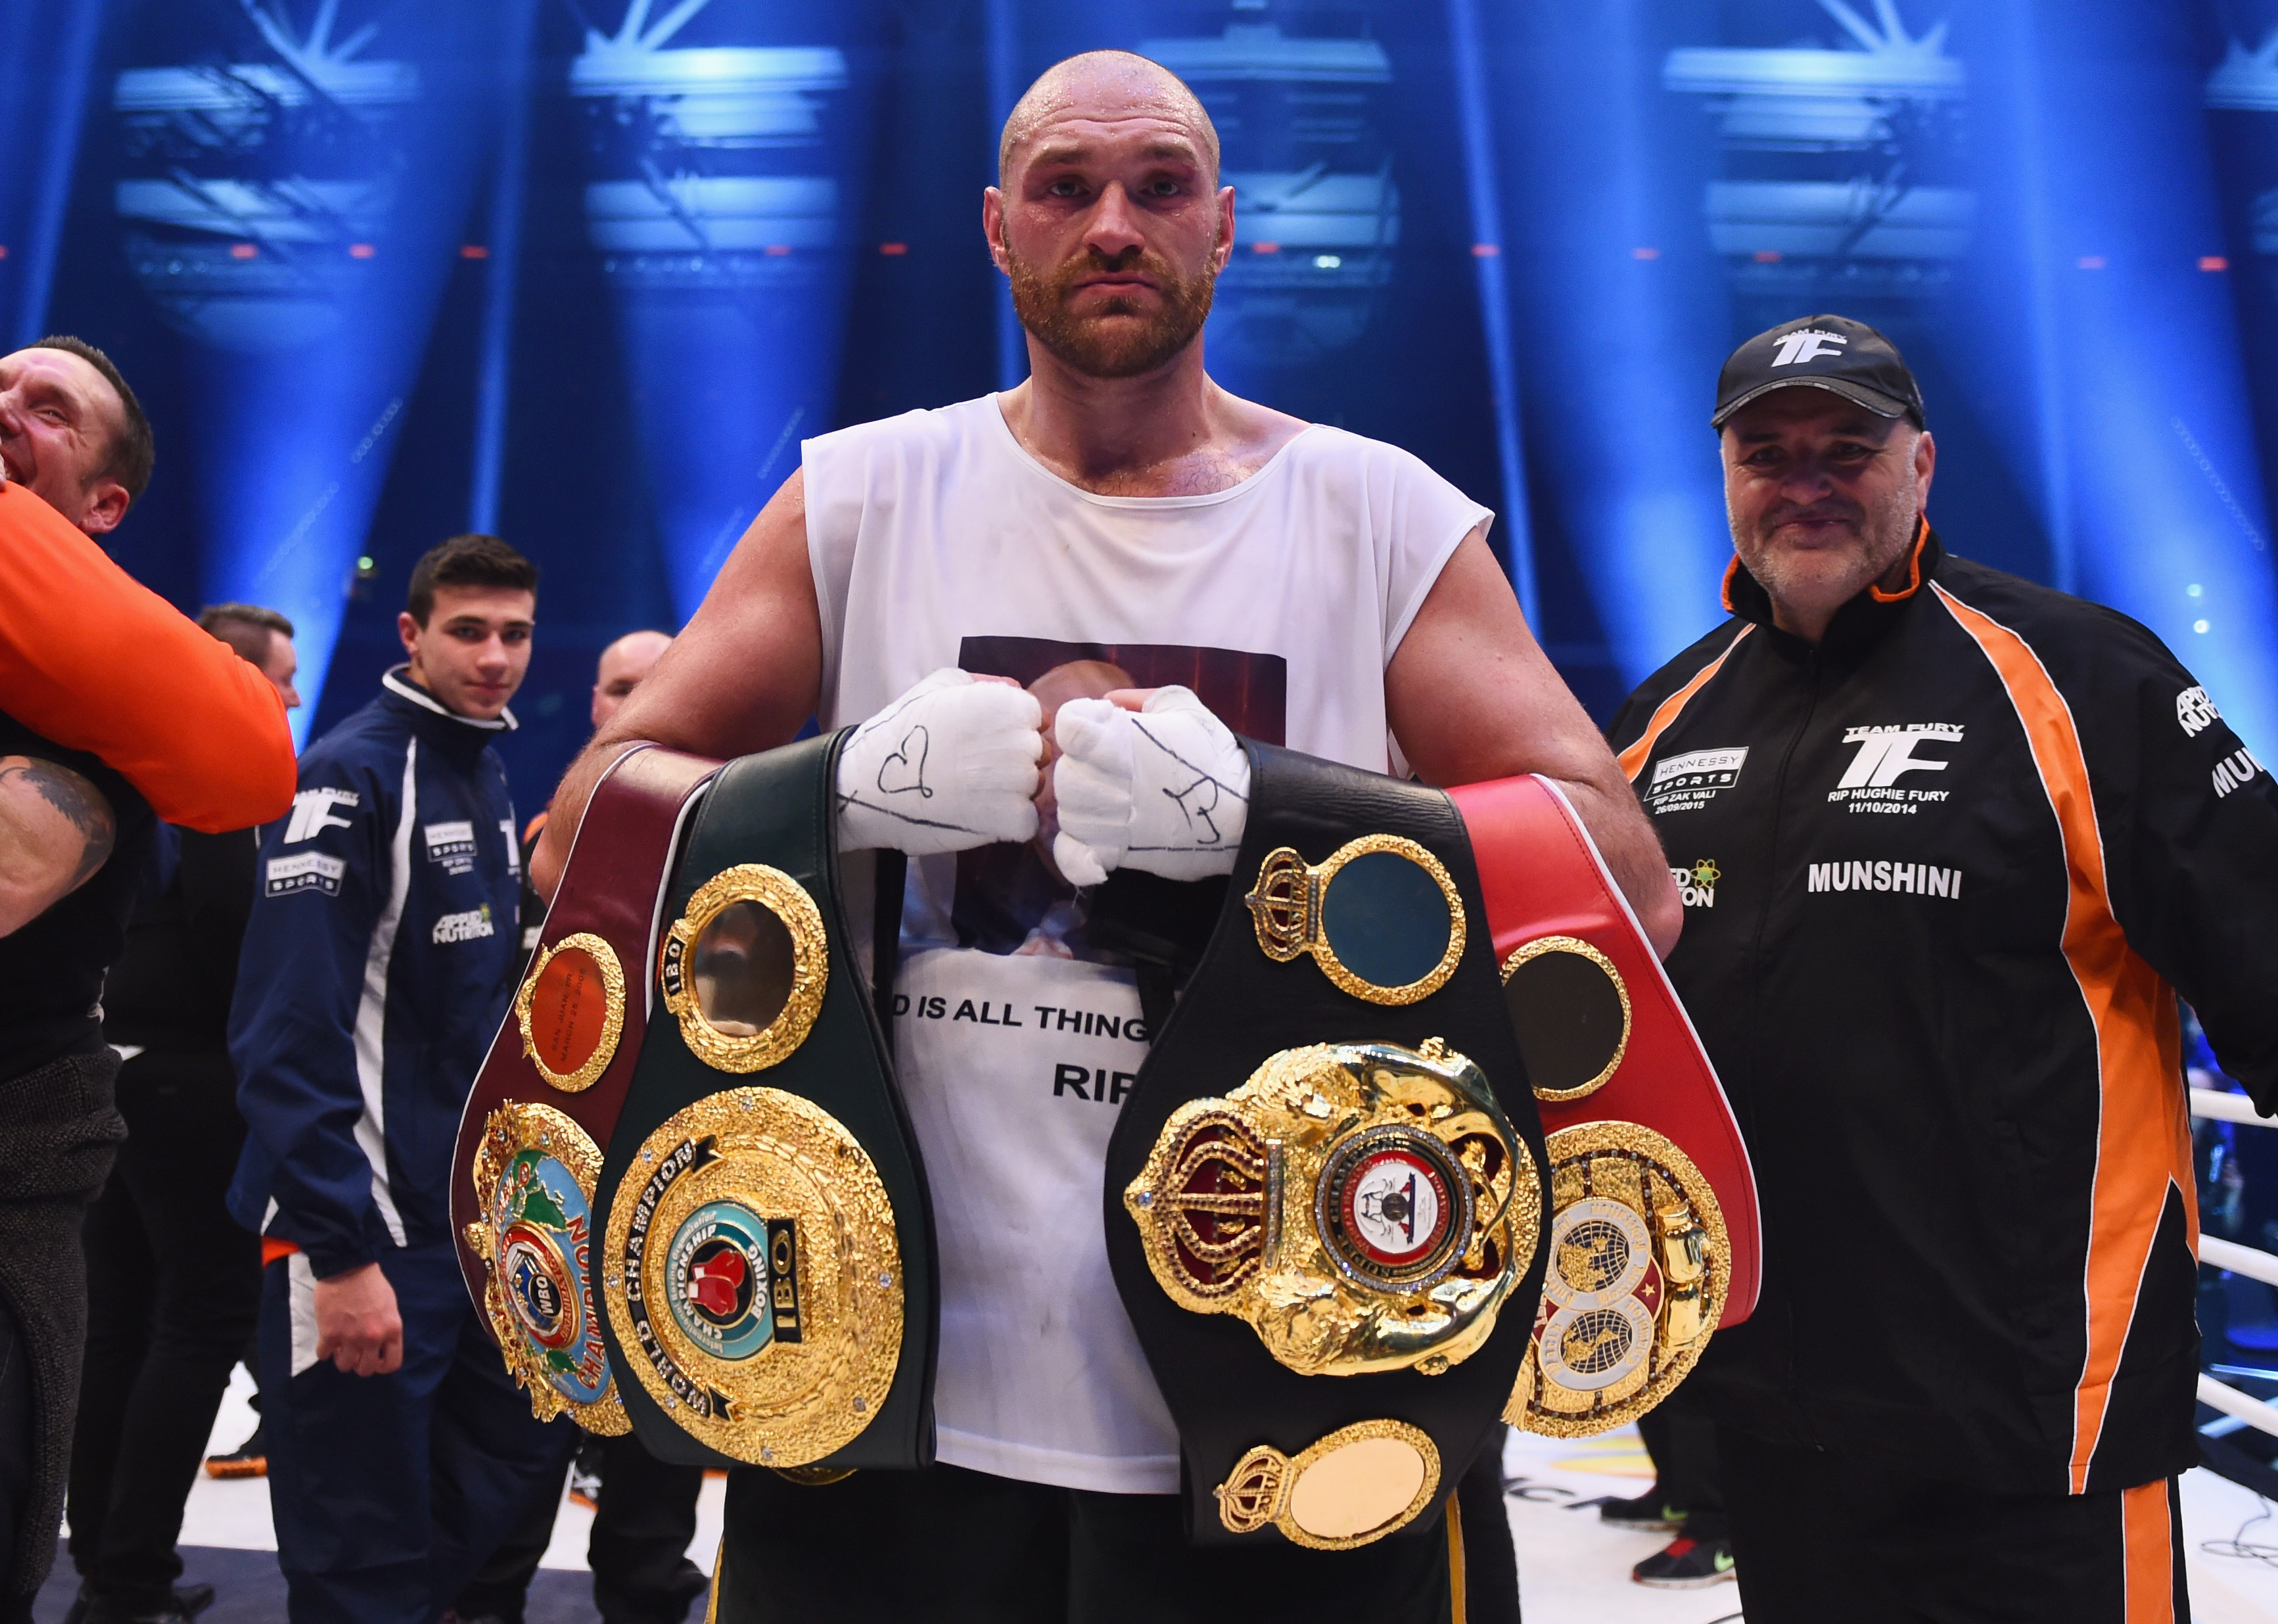 DUESSELDORF, GERMANY - NOVEMBER 28: Tyson Fury celebrates with belts as he defeats Wladimir Klitschko to become new World Heavyweight Champion after the IBF IBO WBA WBO Heavyweight World Championship contest at Esprit-Arena on November 28, 2015 in Duesseldorf, Germany. (Photo by Lars Baron/Bongarts/Getty Images)